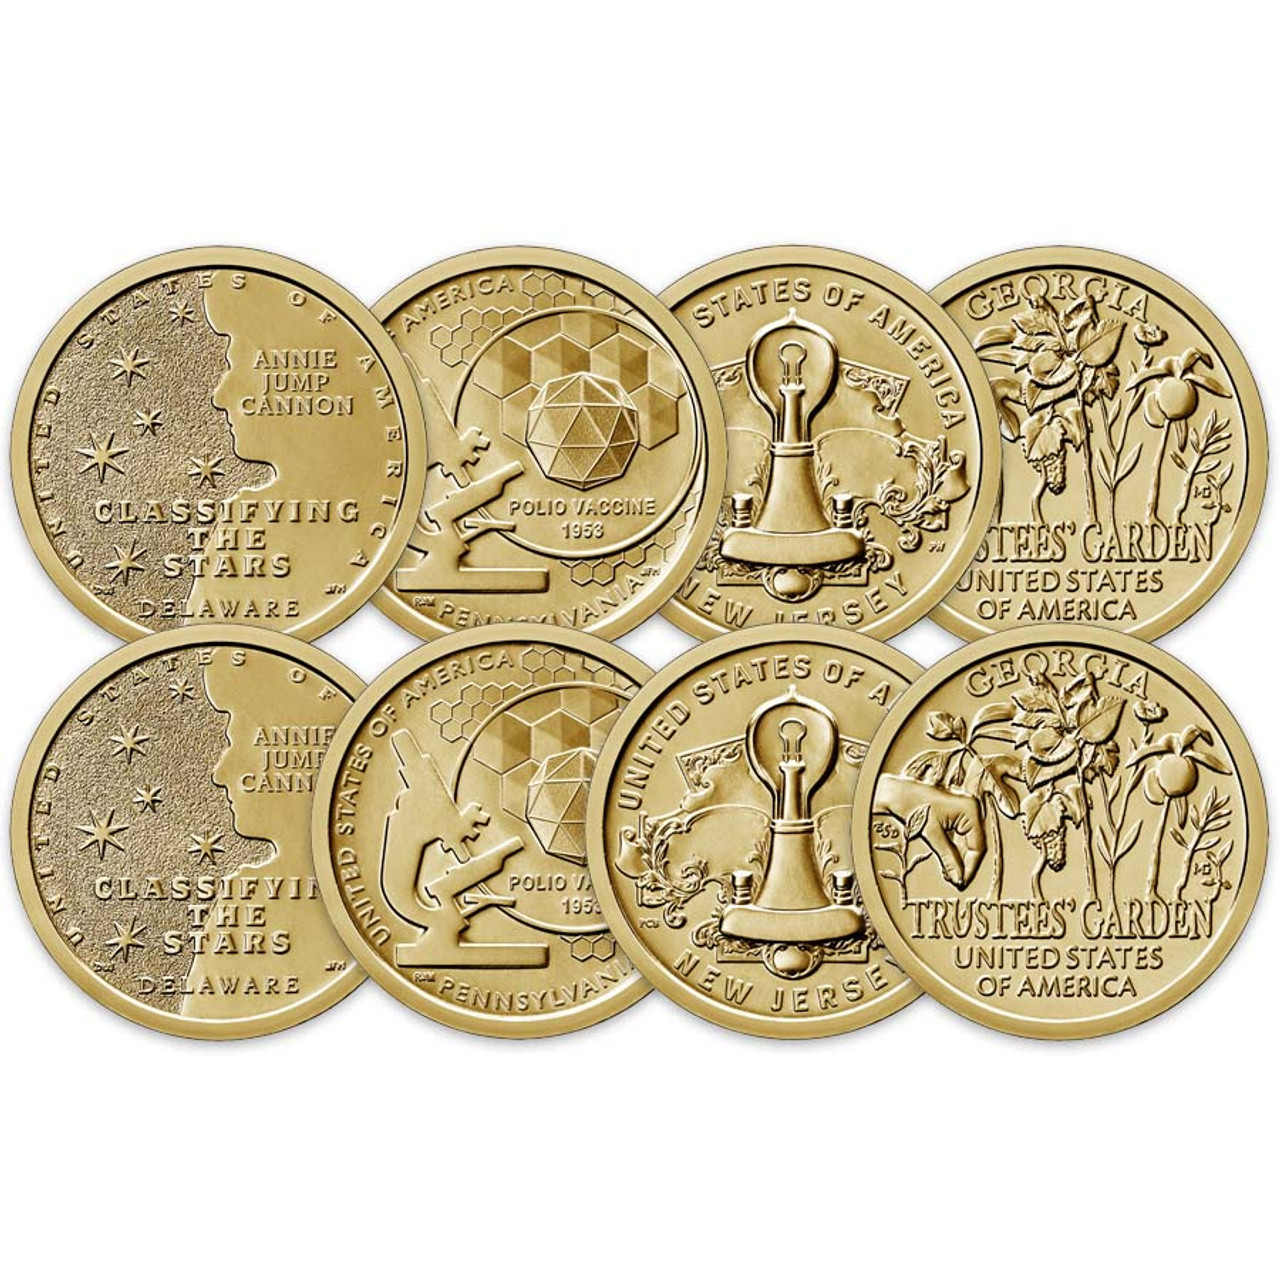 2019 P & D Innovation Dollar 8 Coin Set Brilliant Uncirculated Image 1